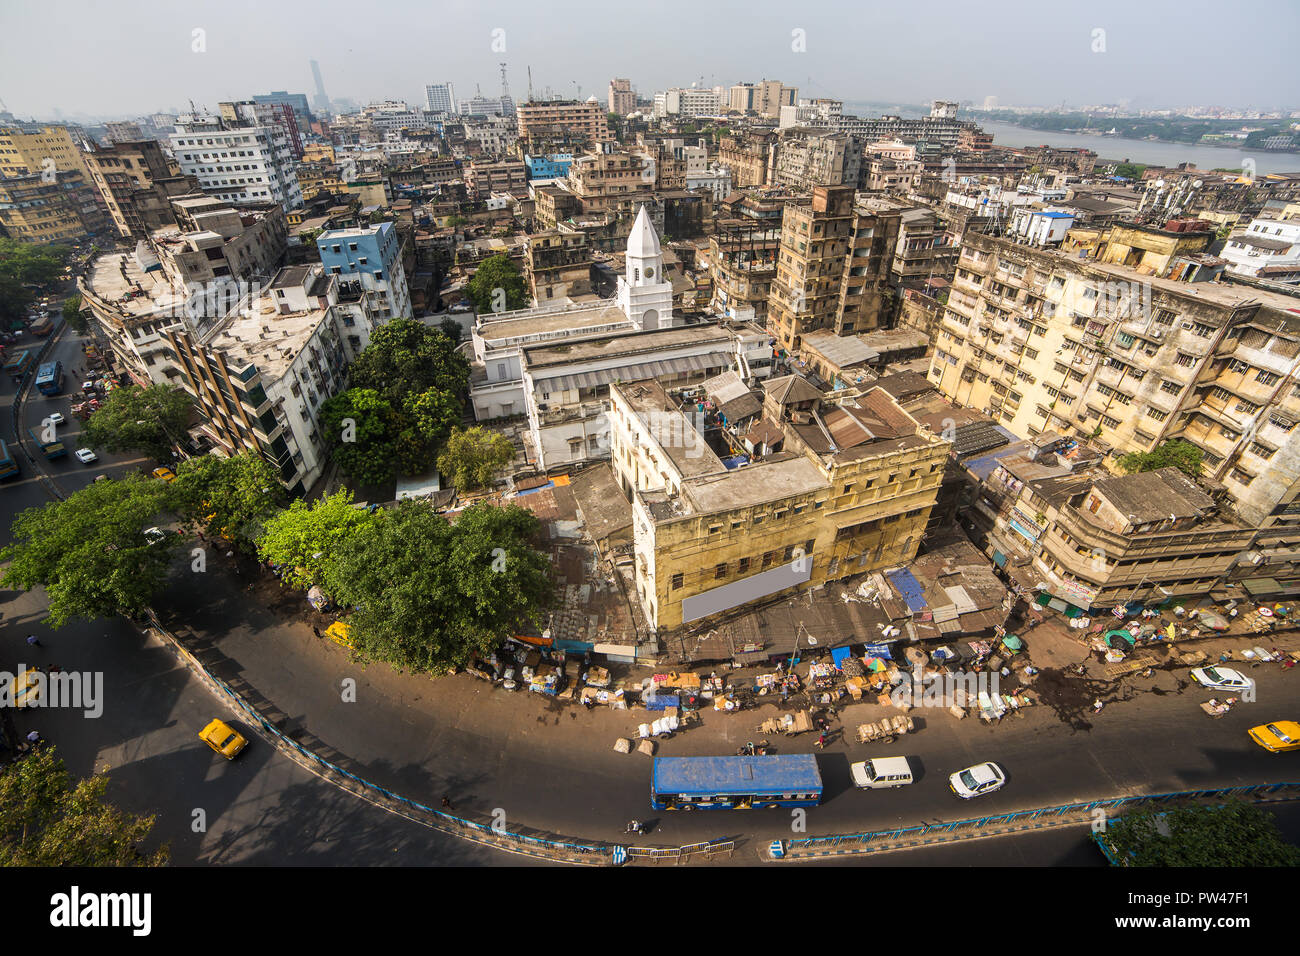 Kolkata city traffic on the crowded street in downtown, West Bengal, India. Top view - Stock Image